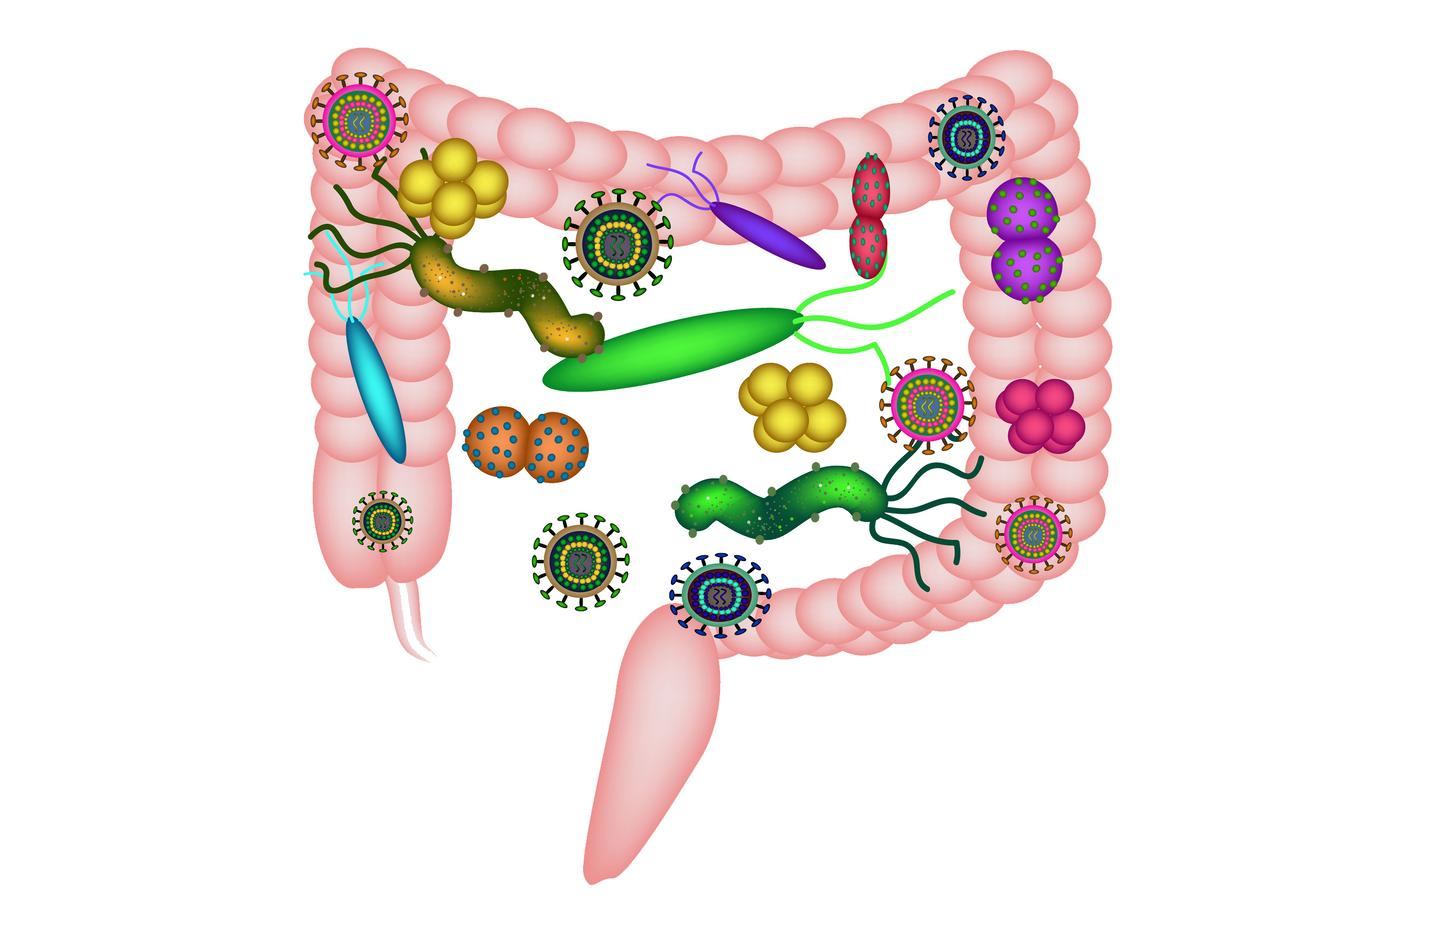 A new study suggests greater levels of a specific type of gut bacteria can increase a person's bowel cancer risk by up to 15 percent